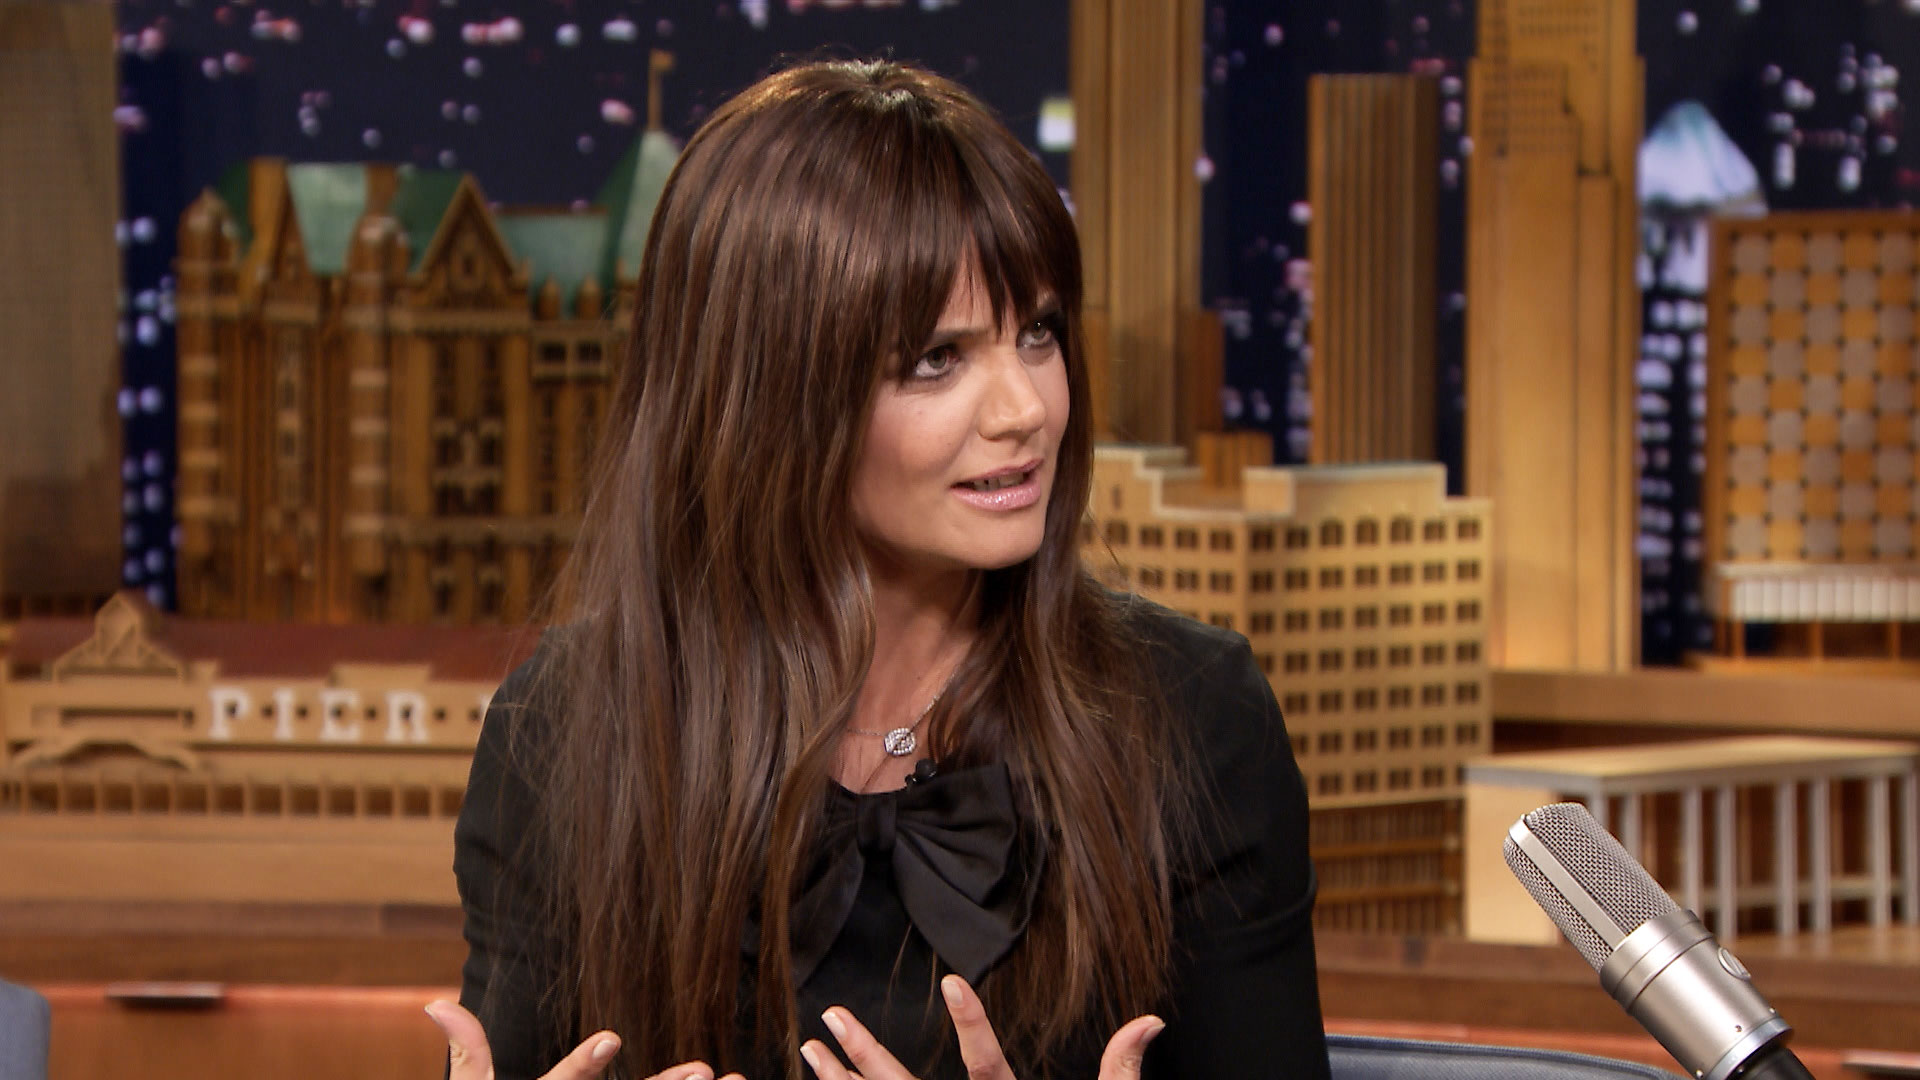 Katie Holmes' All We Had Was a Well-Fed Set - The Tonight Show Katie Holmes